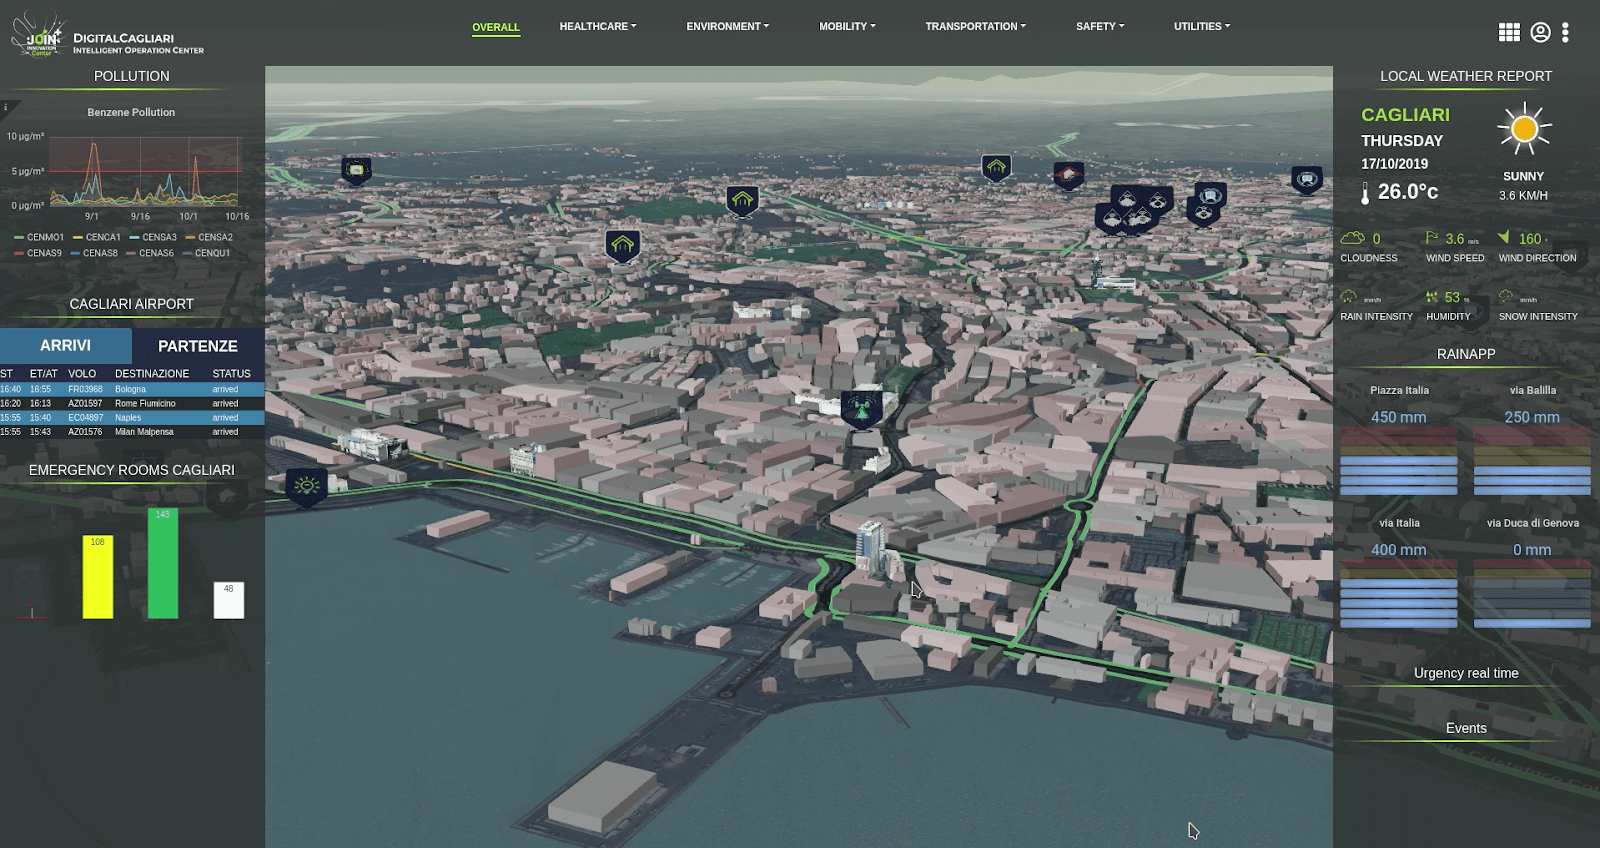 The 3D city model with various sensors